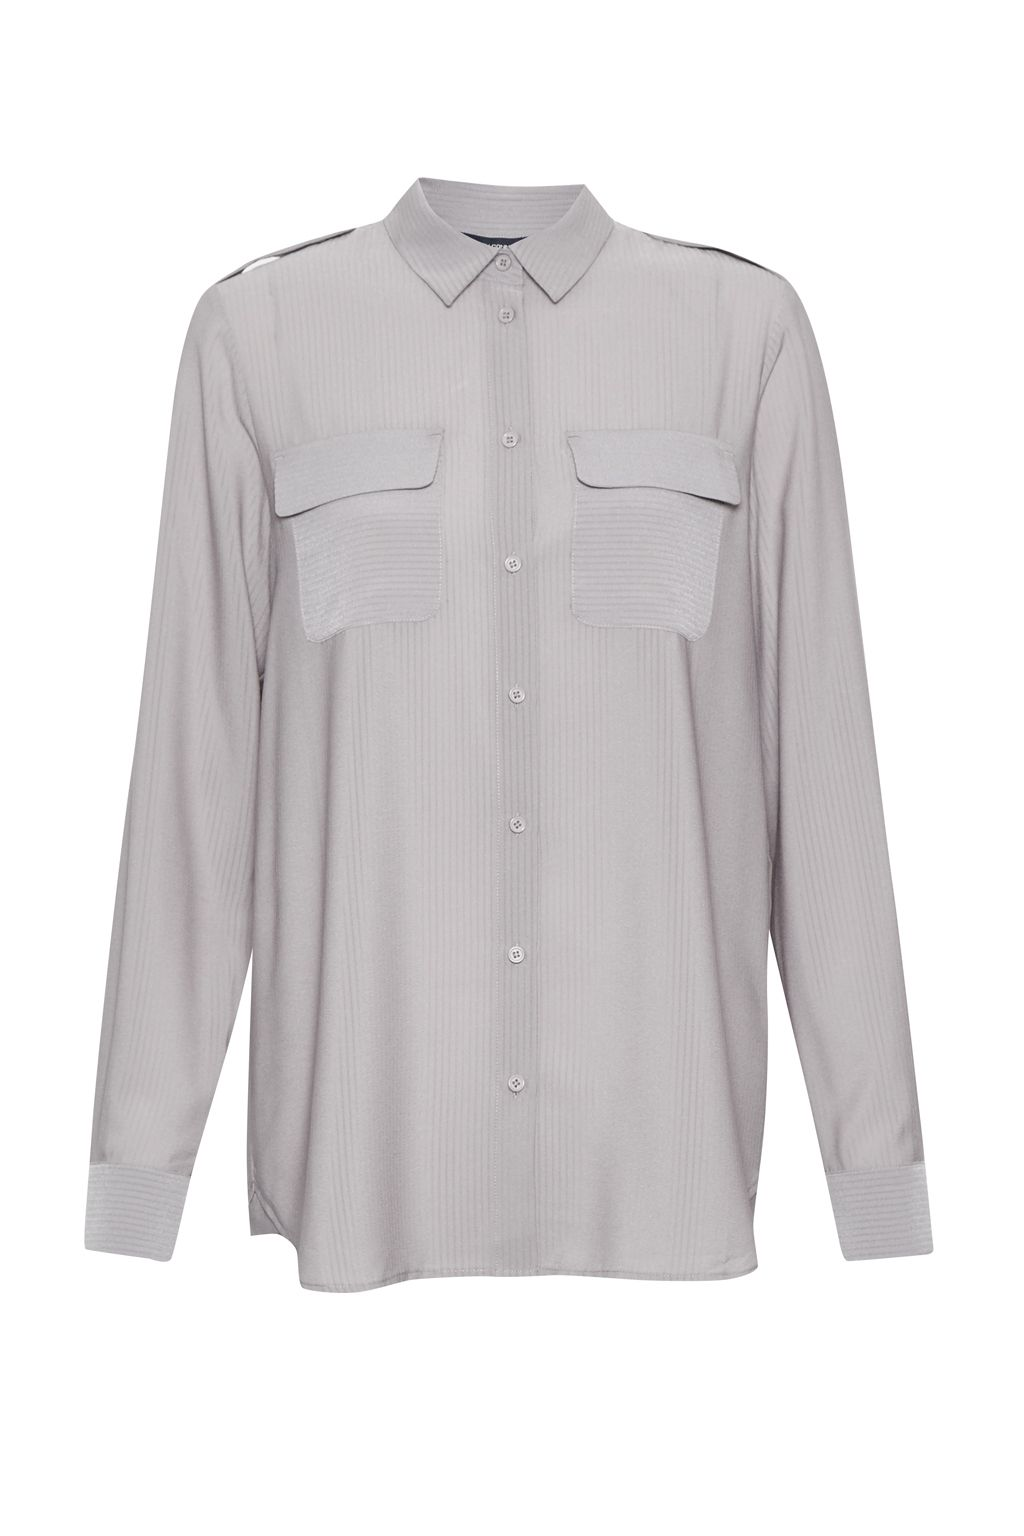 French Connection Pippa Plains Front Pockets Shirt, Grey